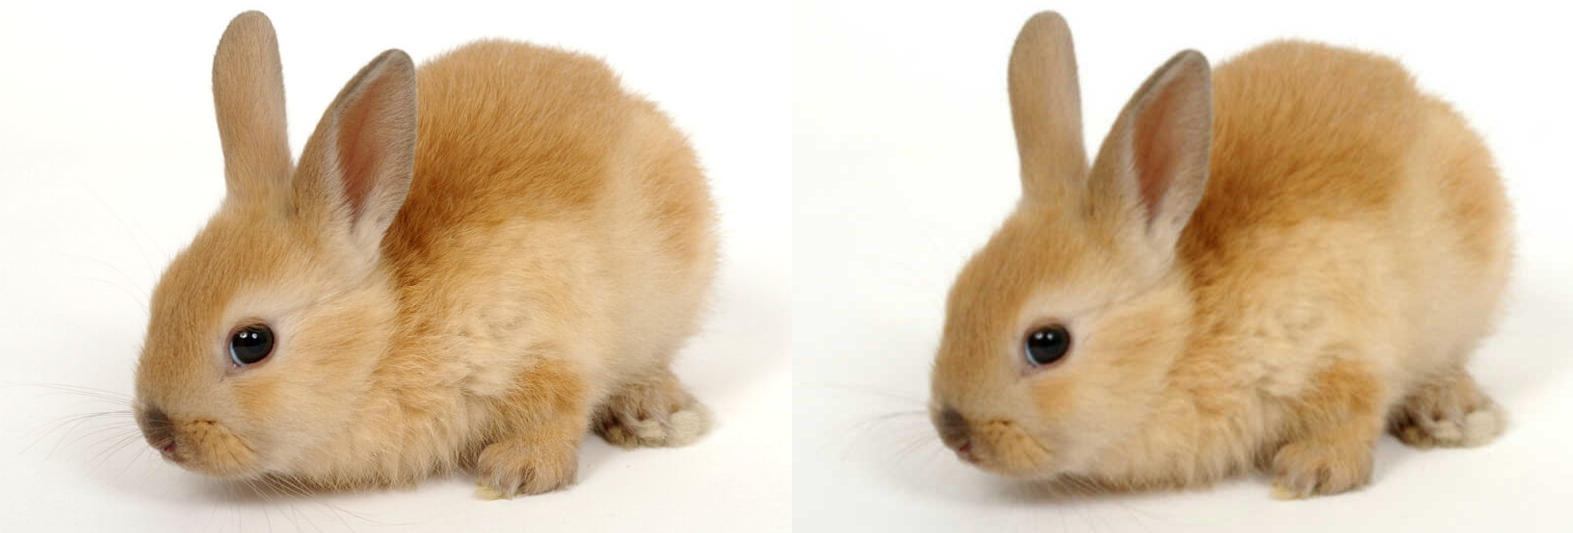 Gaussian blur convolution on a photo of a rabbit.